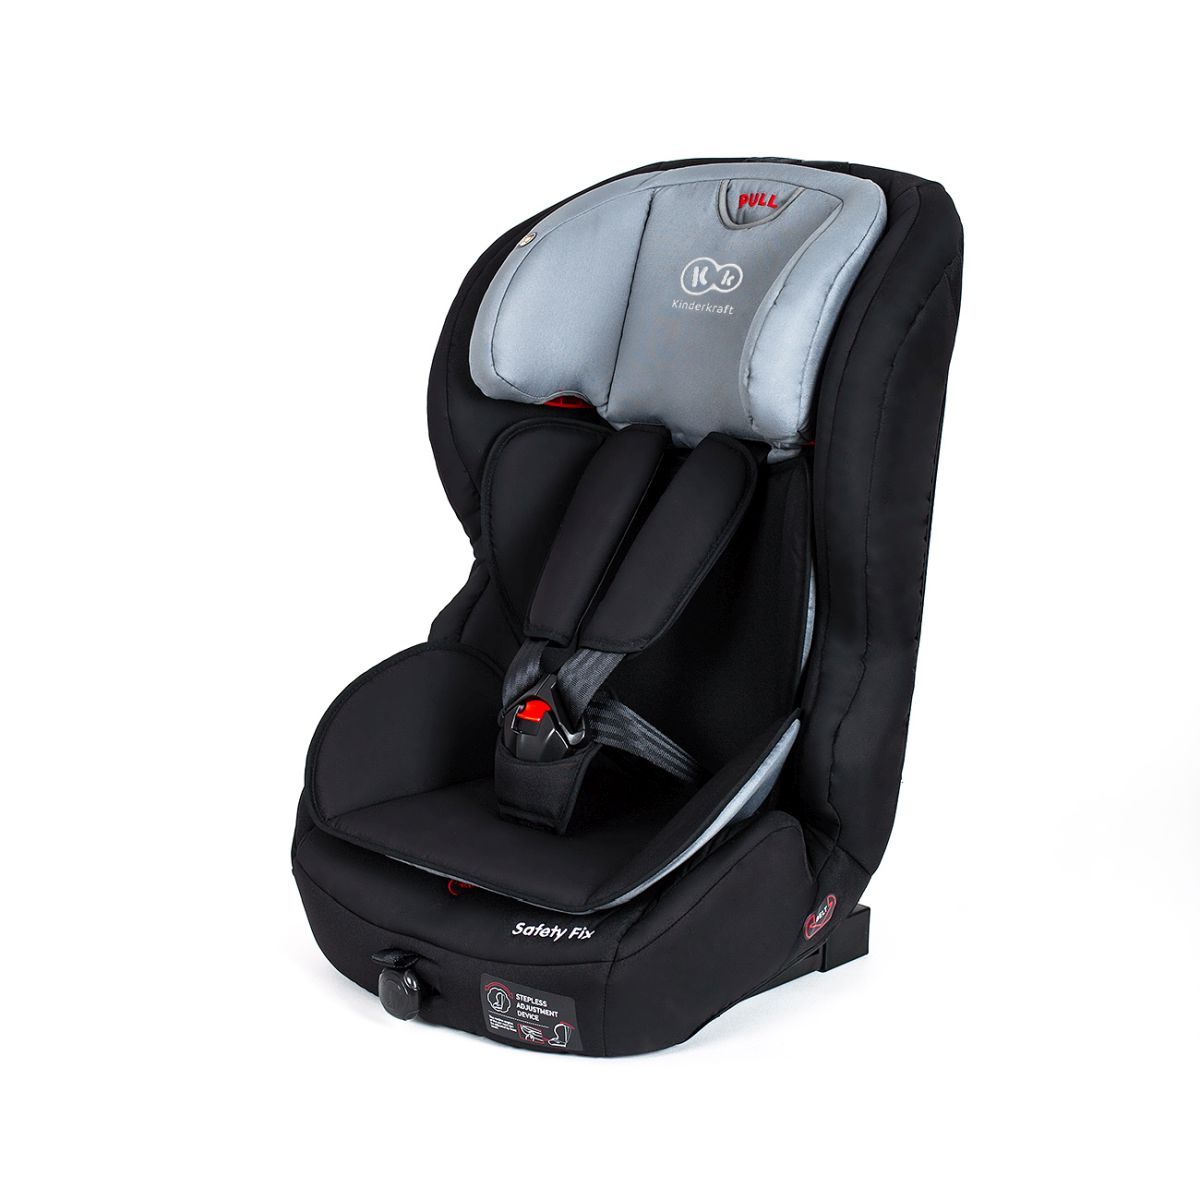 kinderkraft safetyfix isofix kinderautositz kindersitz 9 bis 36 kg gruppe 1 2 3 ebay. Black Bedroom Furniture Sets. Home Design Ideas